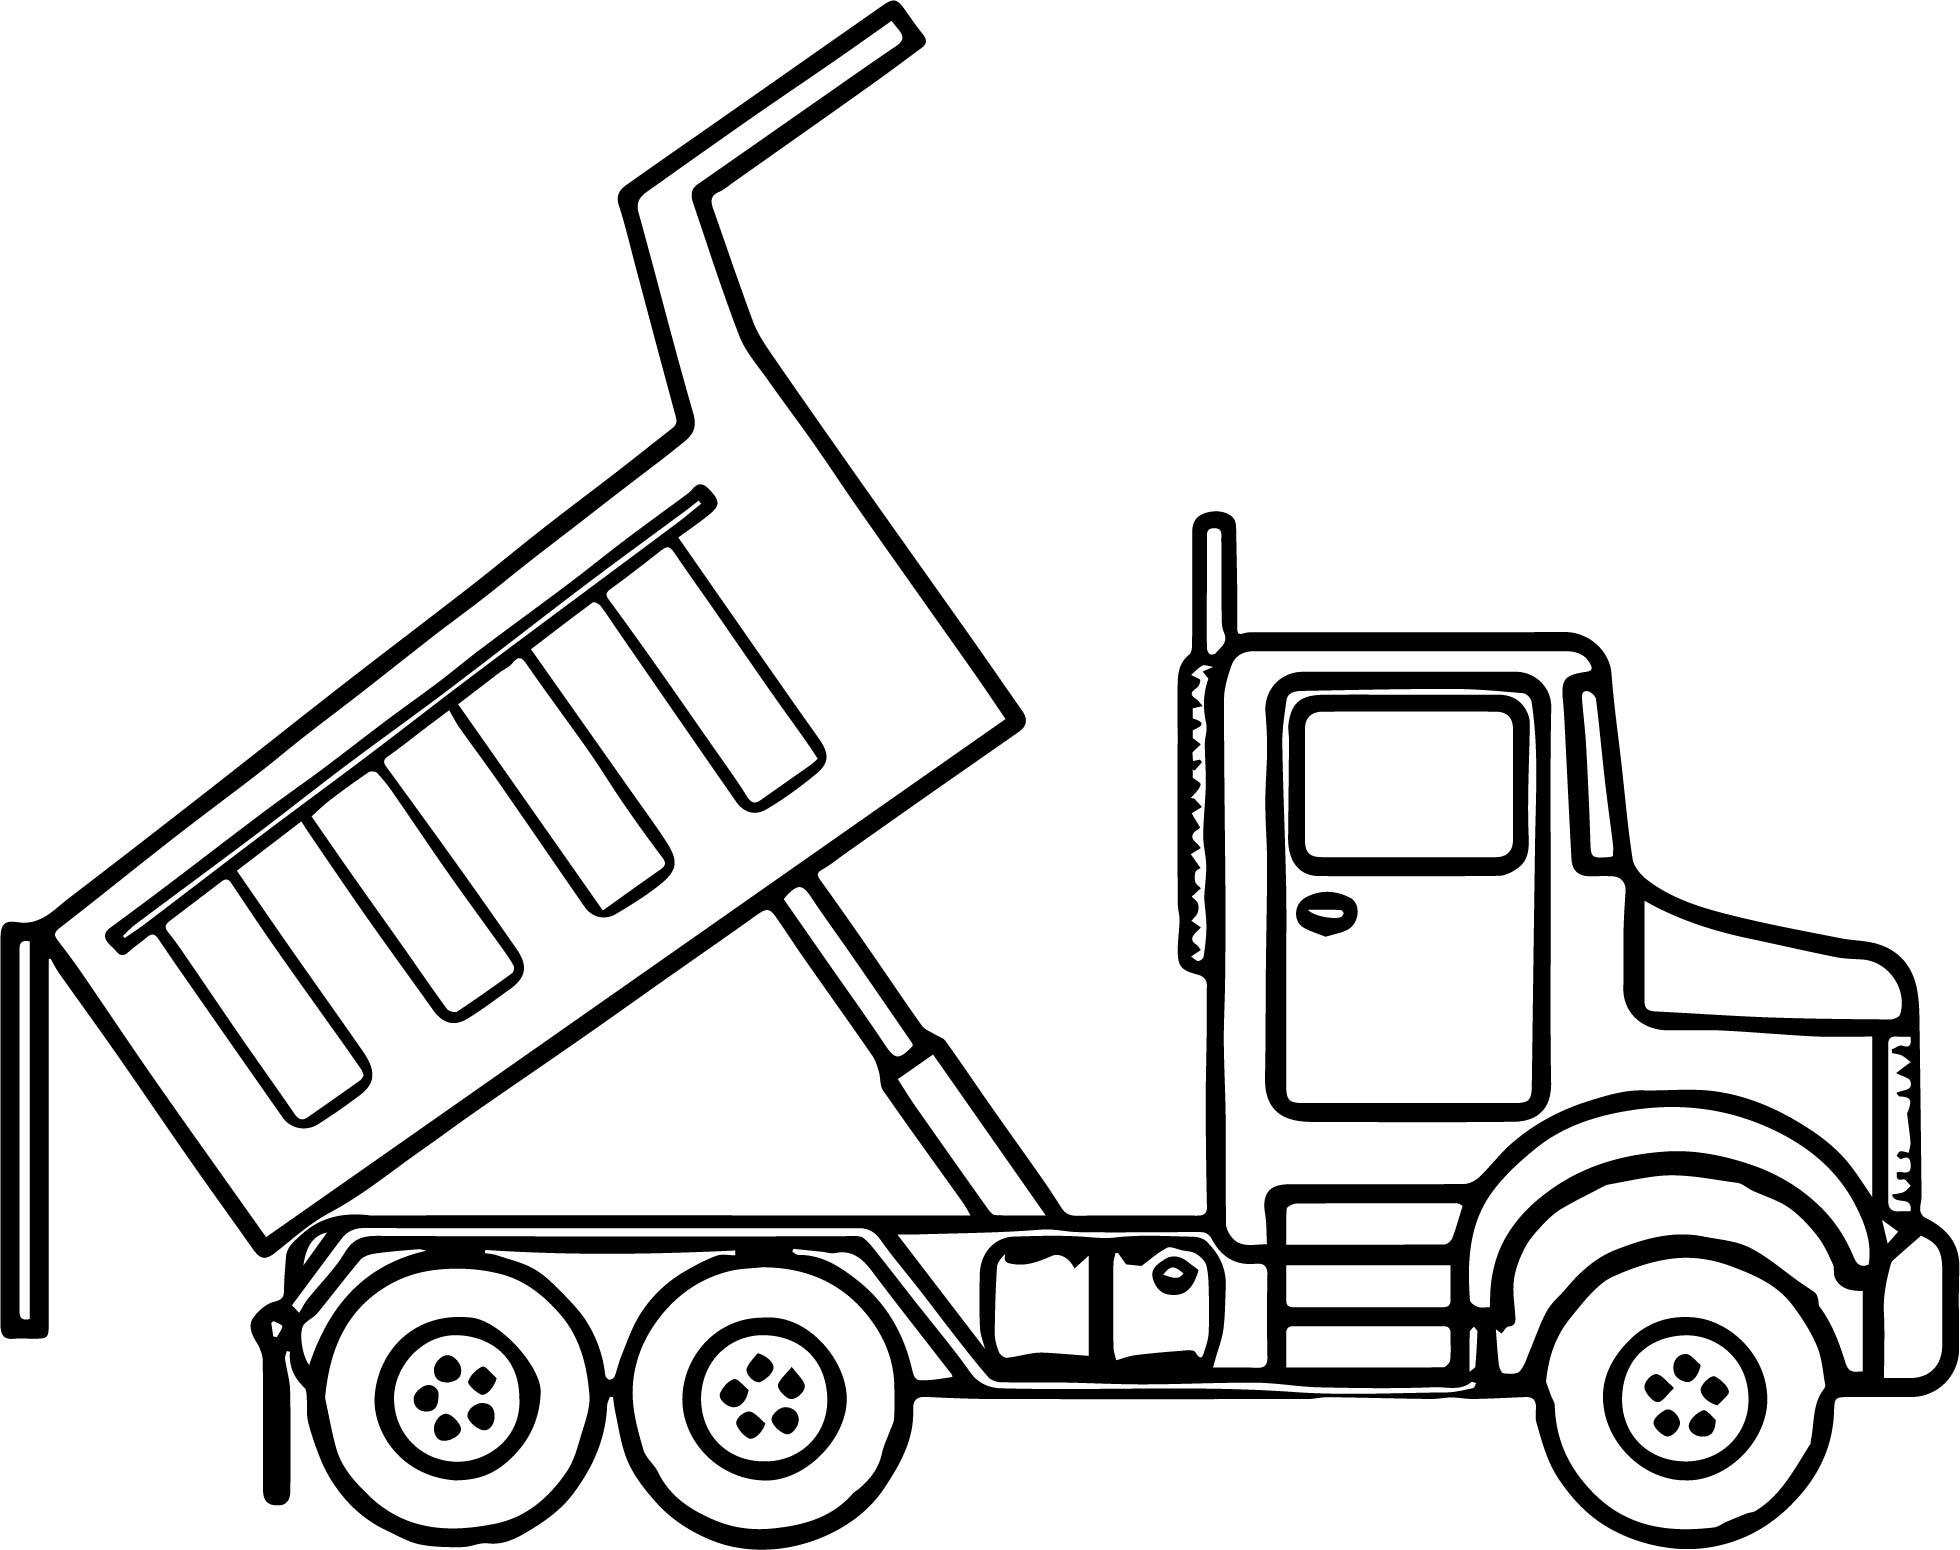 construction truck coloring pages construction coloring pages coloring pages to download construction pages coloring truck